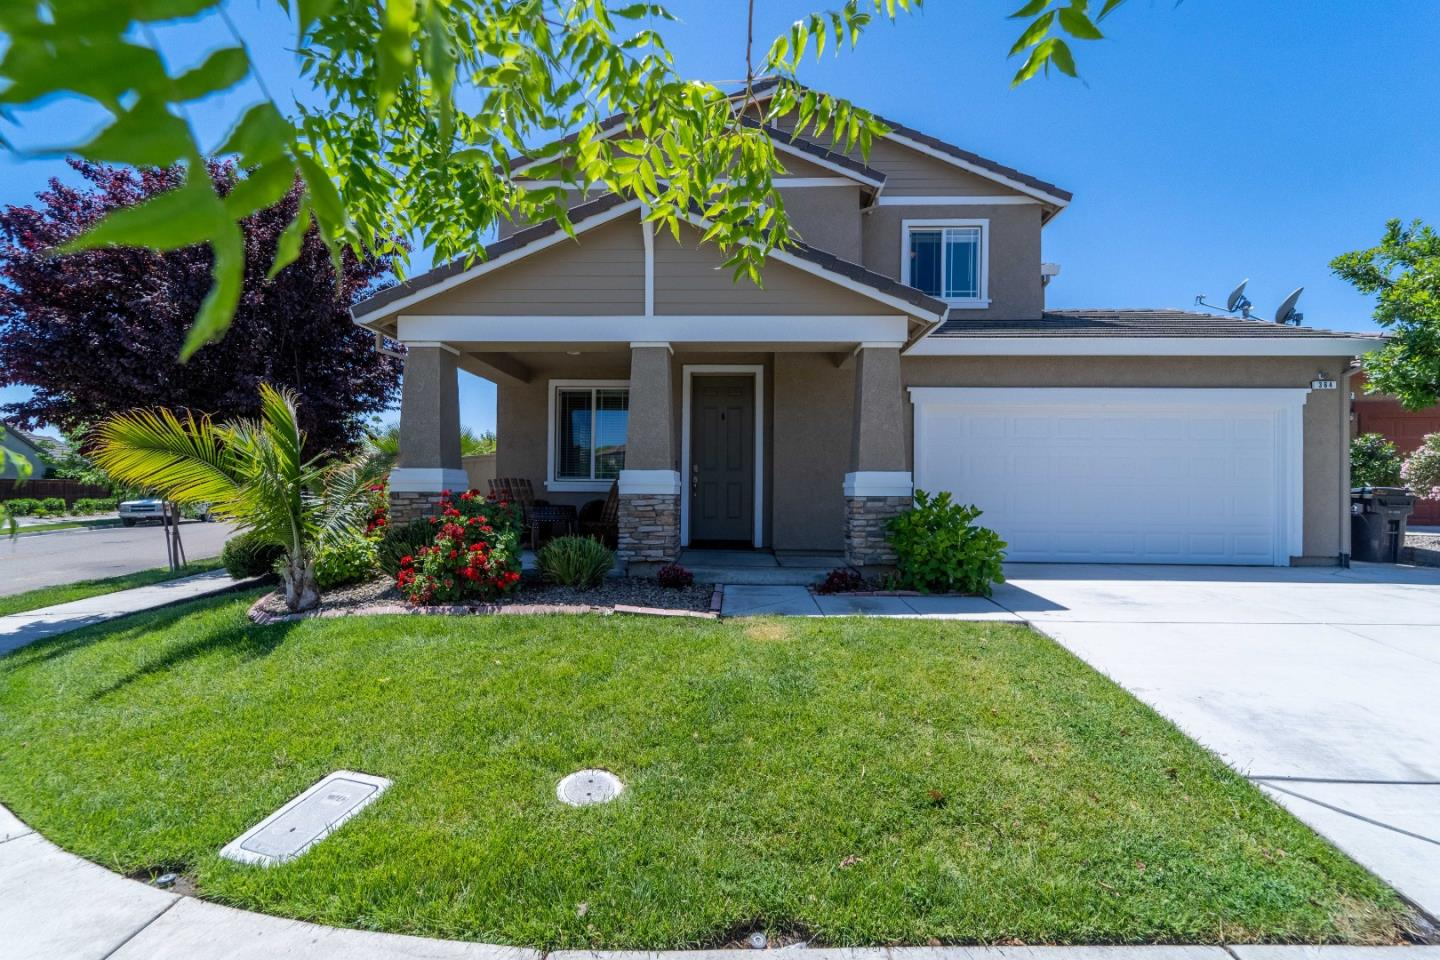 Detail Gallery Image 1 of 1 For 364 Colonial Trl, Lathrop,  CA 95330 - 4 Beds   3/1 Baths